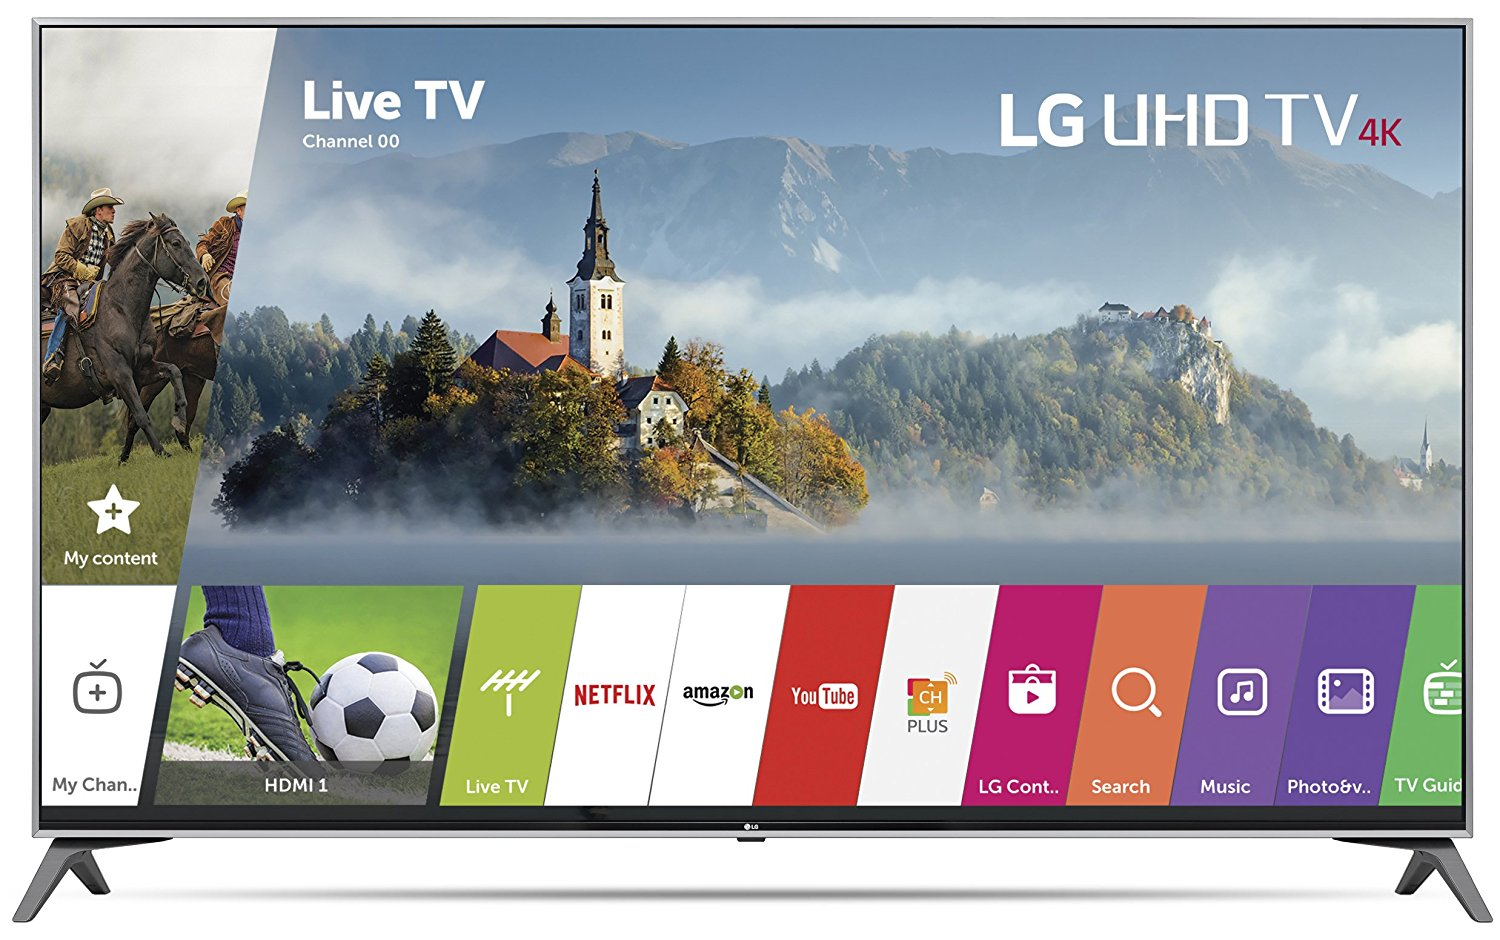 An image of LG 60UJ7700 60-Inch HDR Flat Screen 4K LED 60Hz Smart TV with LG TruMotion 120